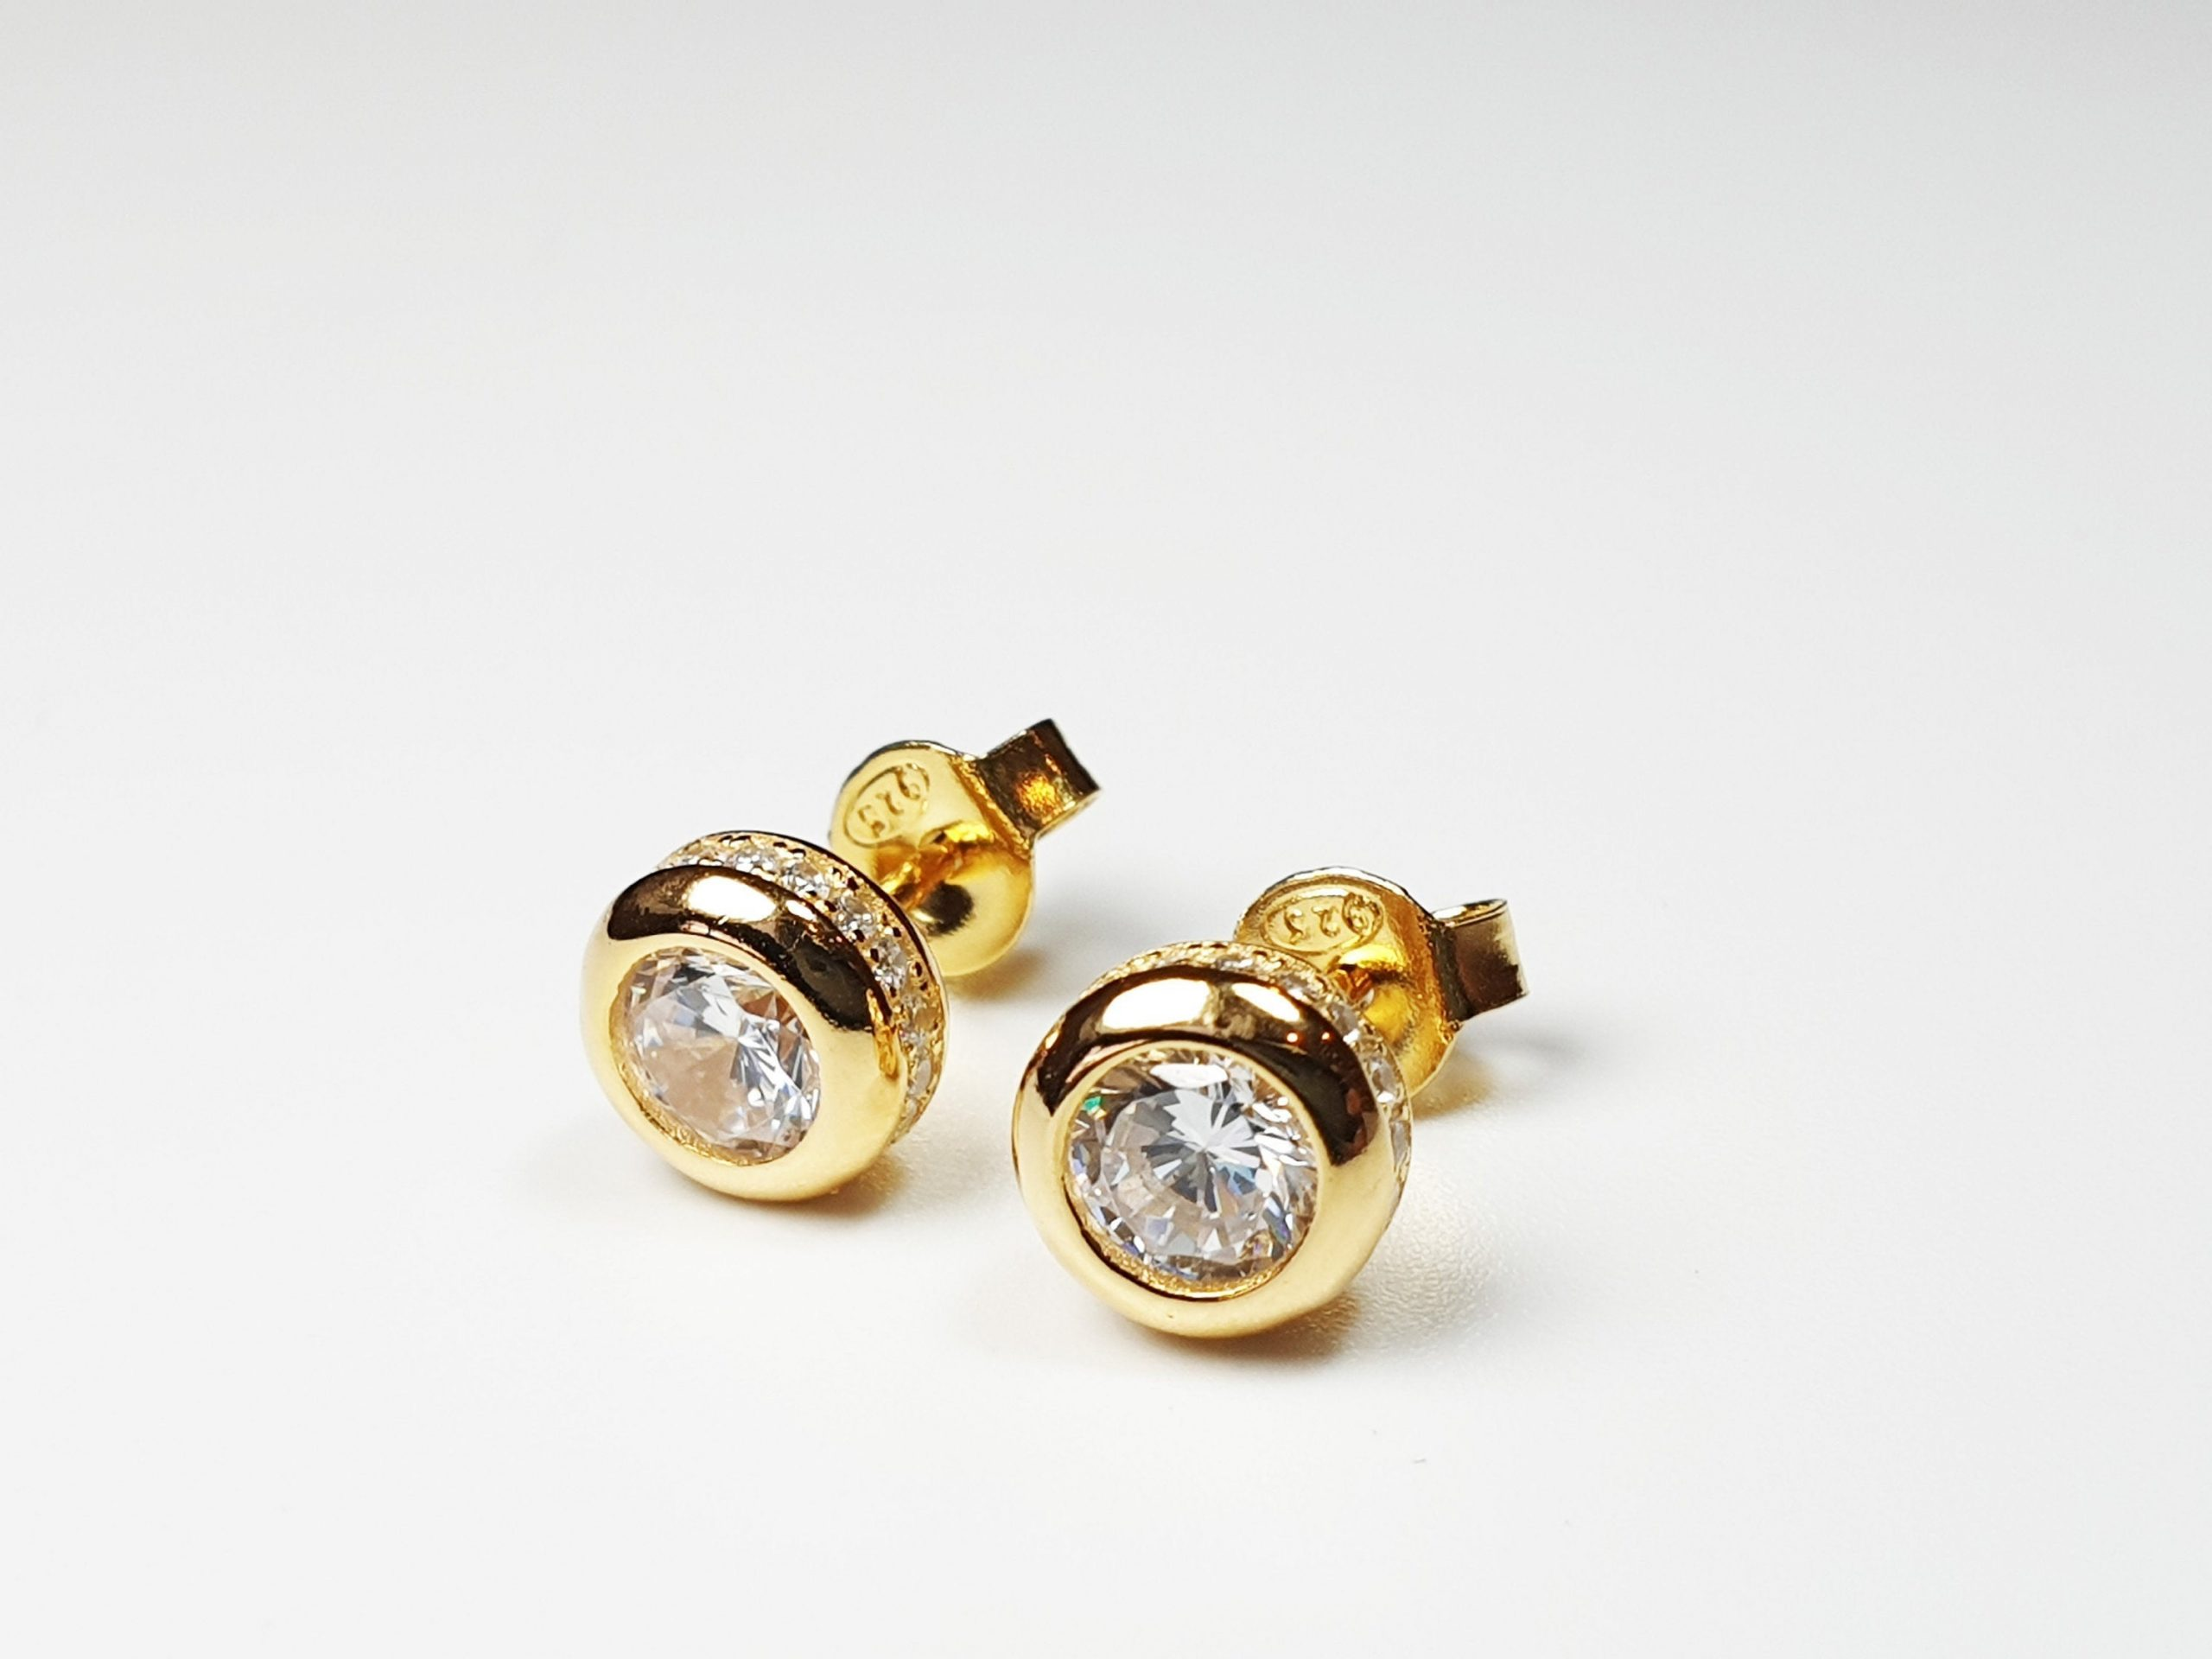 Sterling Silver 5 Mm Cz Round Bezel Stud Earrings, Brilliant Cut Yellow Gold Circle Studs, Halo Setting, Wedding Jewelry